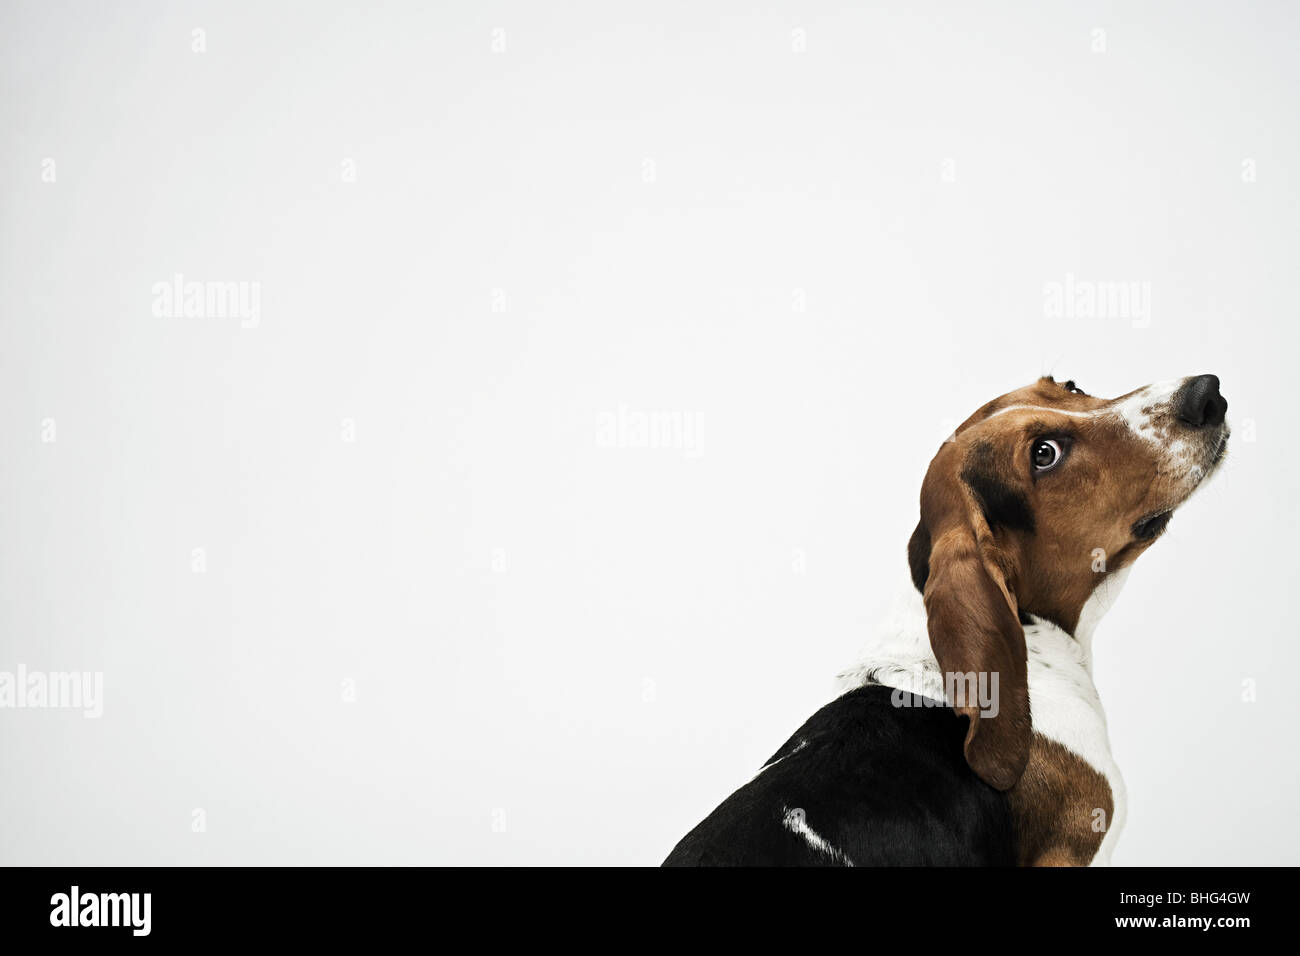 Basset hound Stock Photo: 28014361 - Alamy